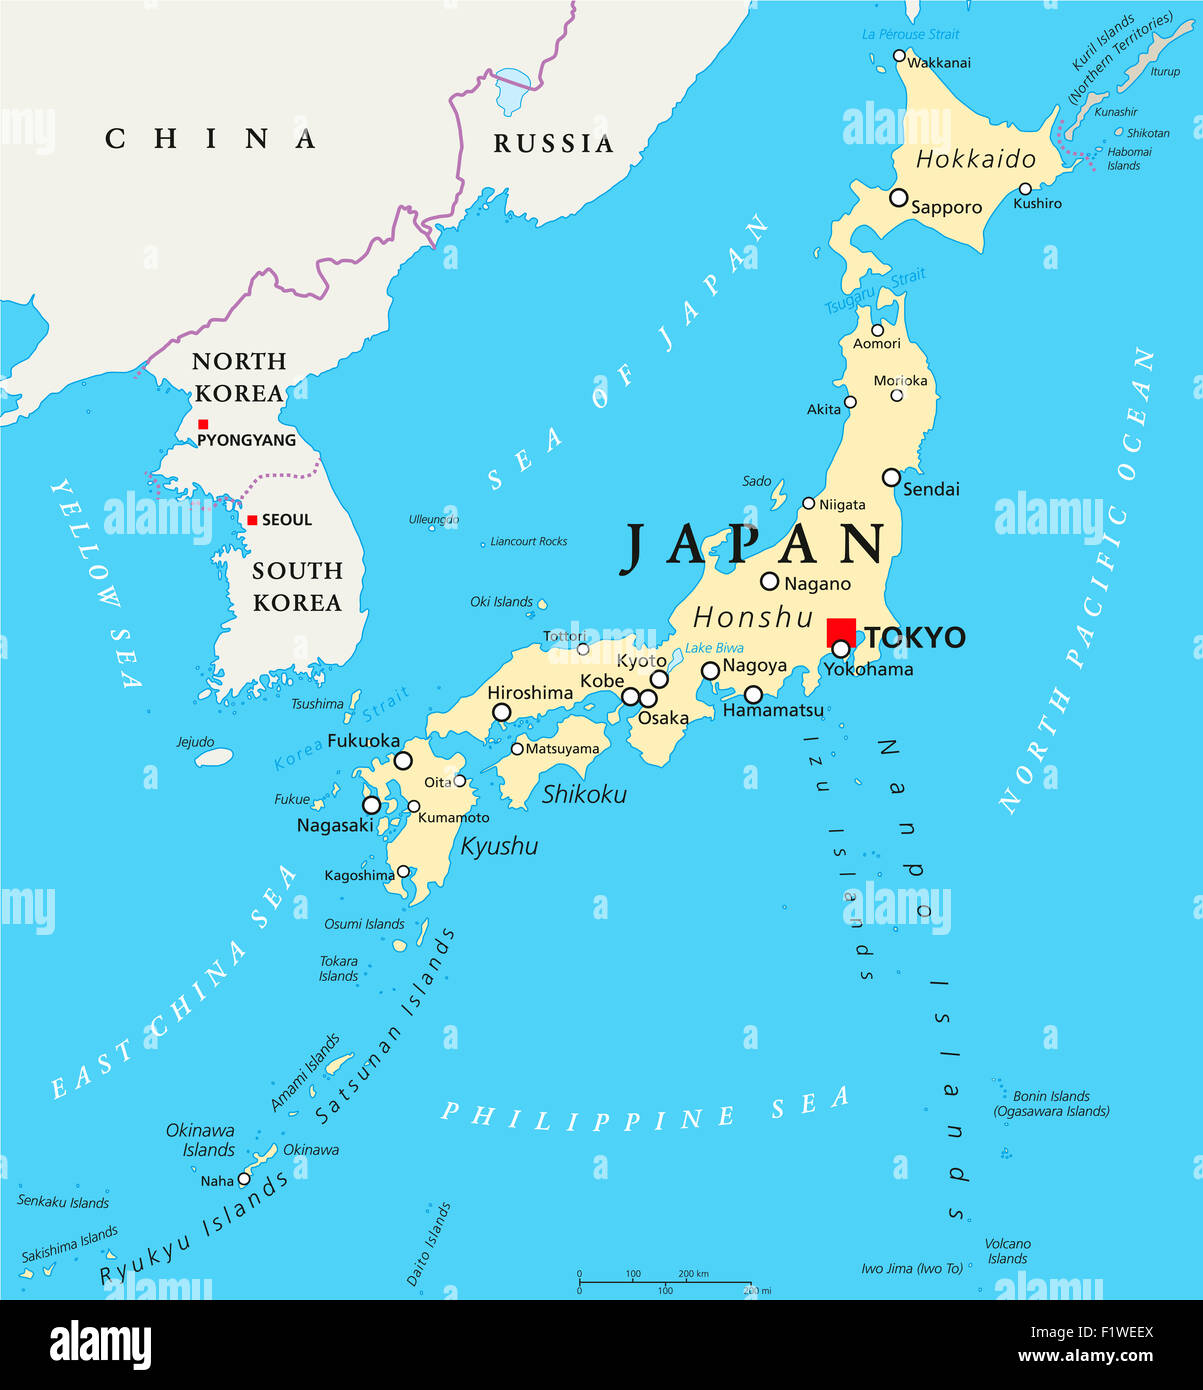 Japan Map Kyushu Stock Photos Japan Map Kyushu Stock Images Alamy - Japan map english version